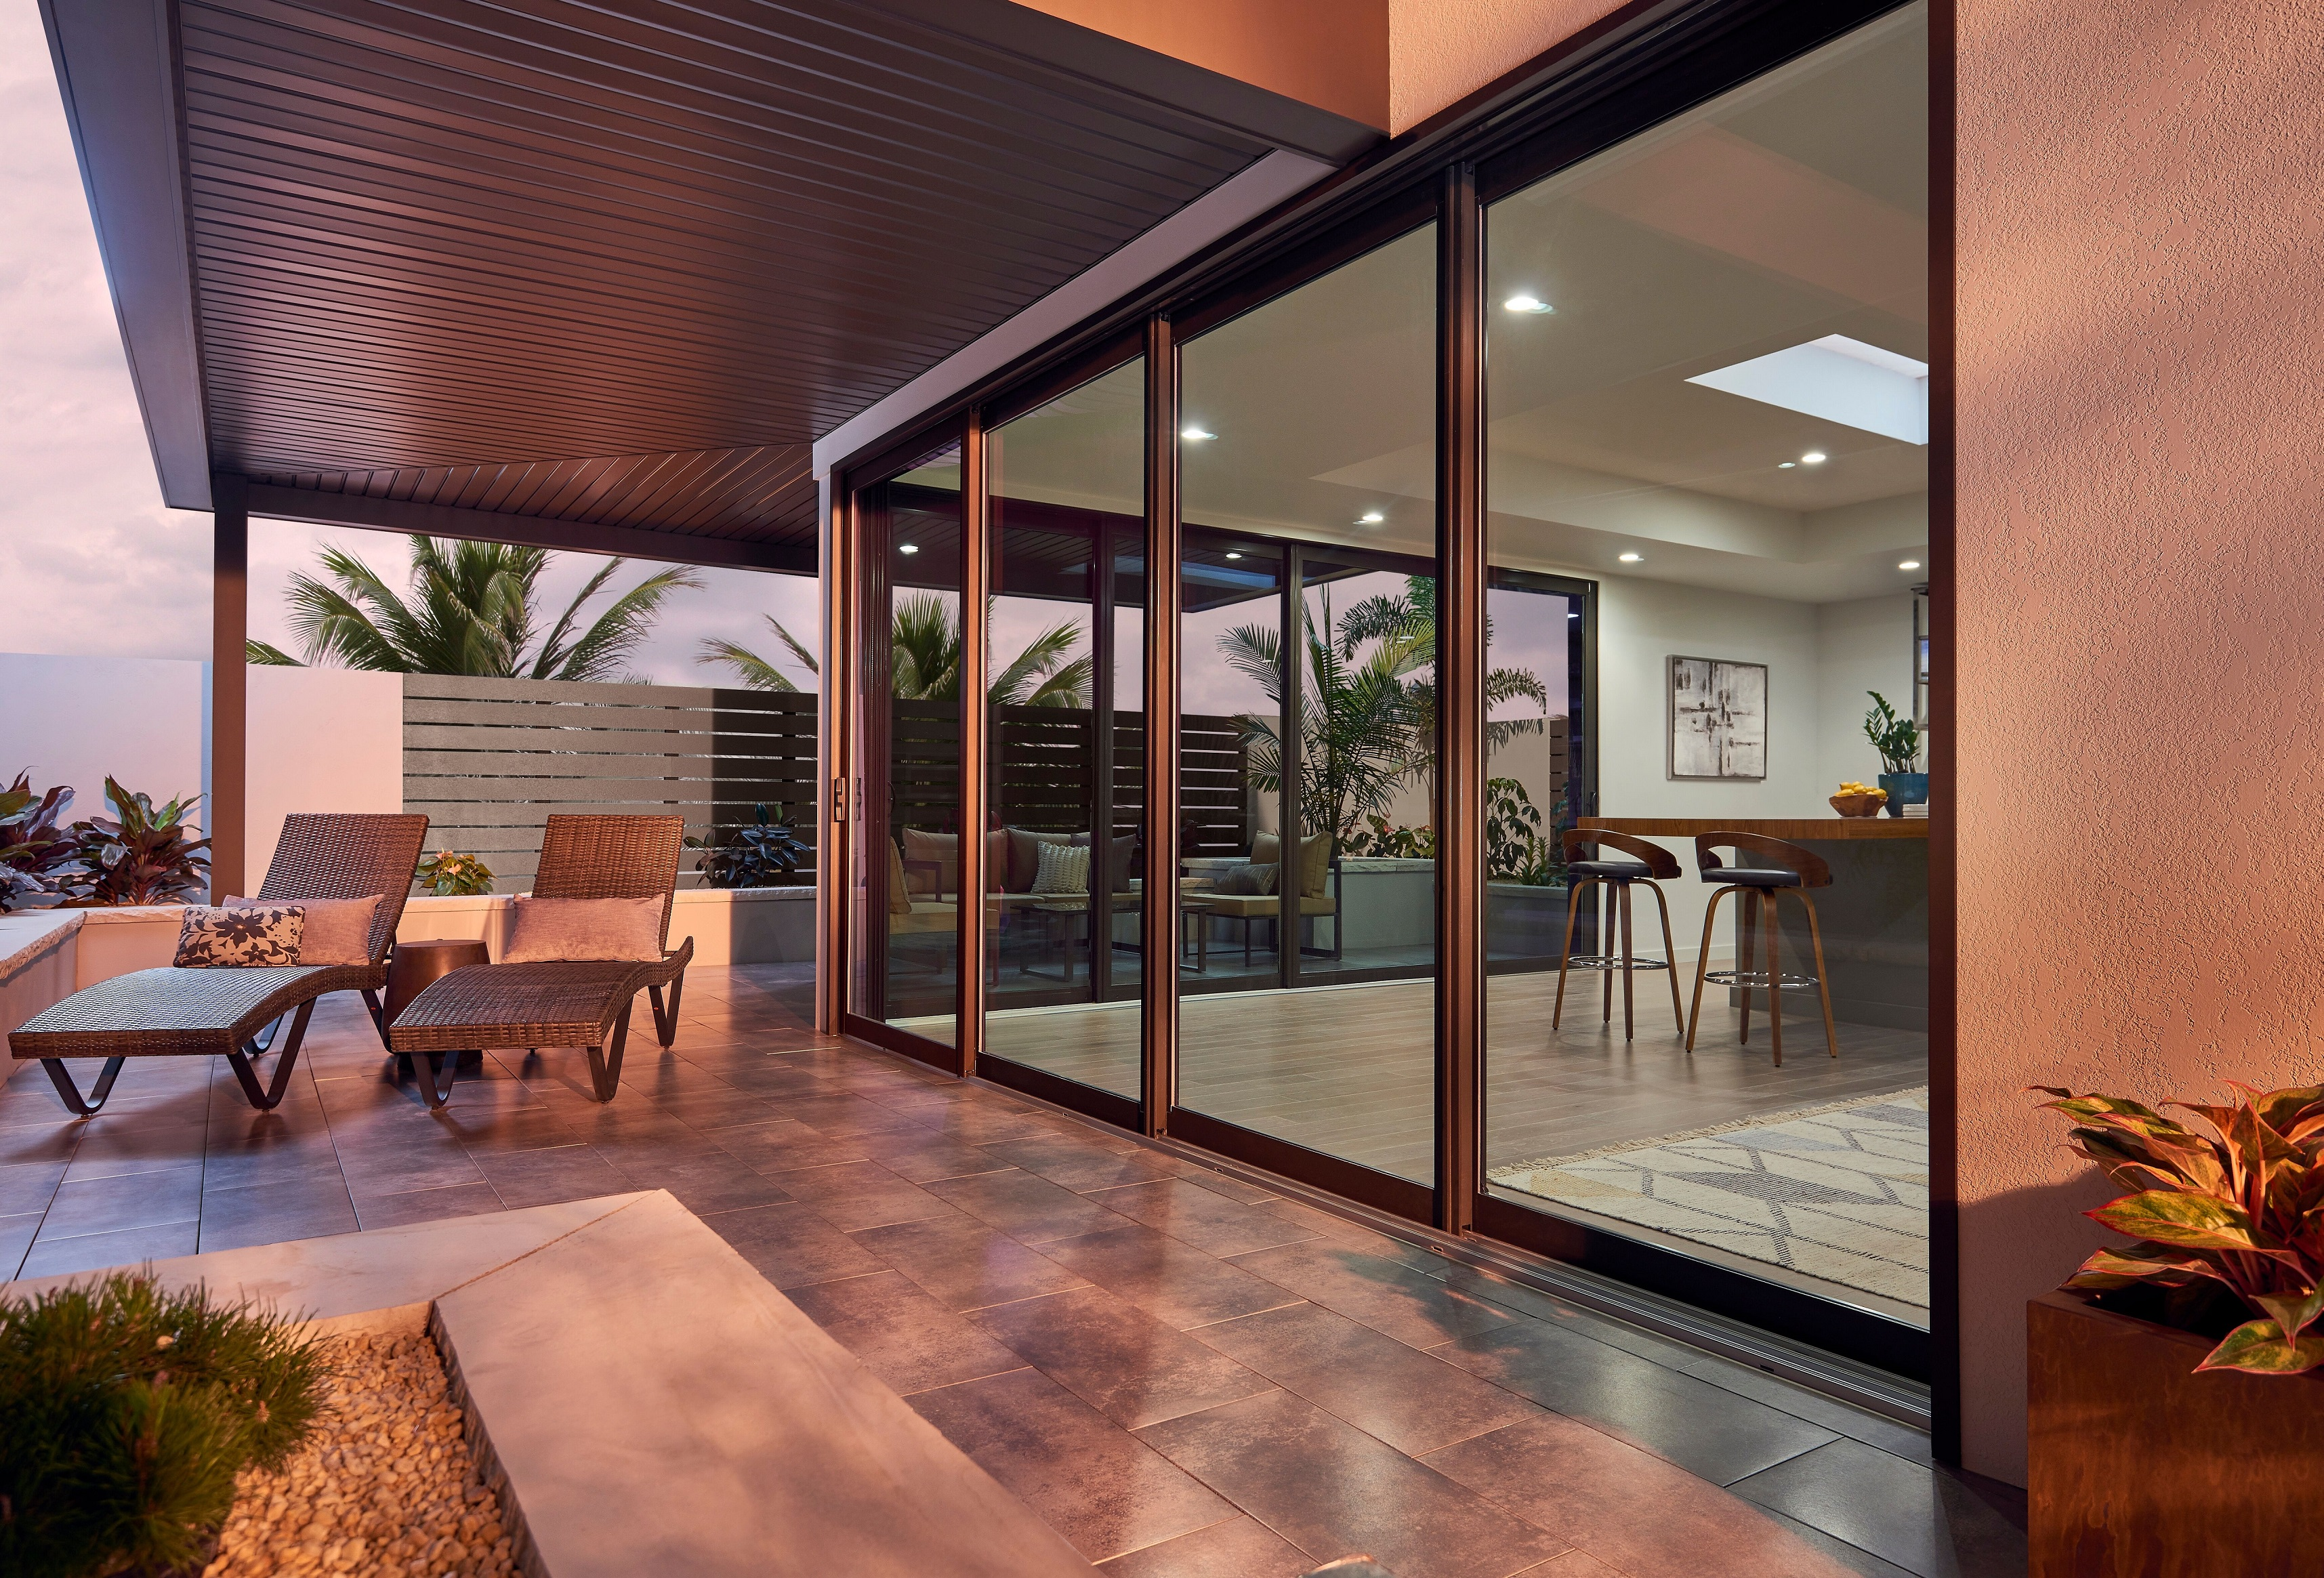 Photo of house with Ply Gem 4800 Series Patio Door